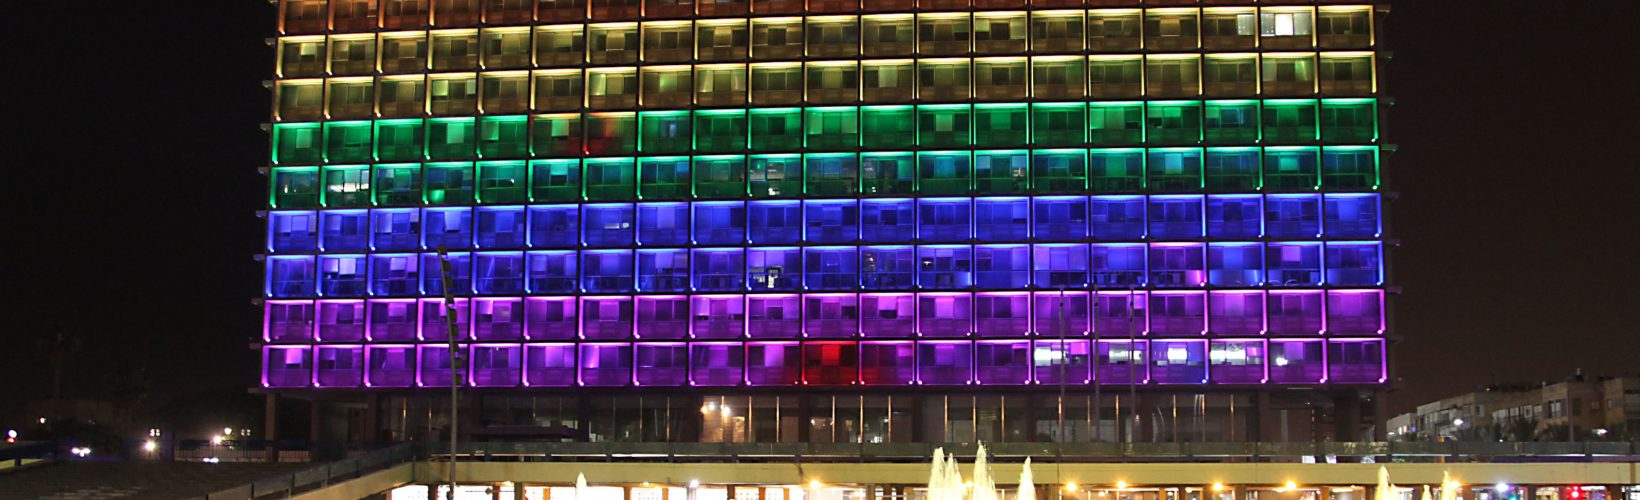 The Tel Aviv Municipality building, at Rabin Square, is lit with the colors of the Pride flag, on June 4, 2014, ahead of the Tel Aviv Gay Pride Week from June 8-14. Photo by Gideon Markowicz/Flash 90. *** Local Caption *** úì àáéá áðééï òéøééä ëéëø øáéï ãâì äâàååä ùáåò äâàååä